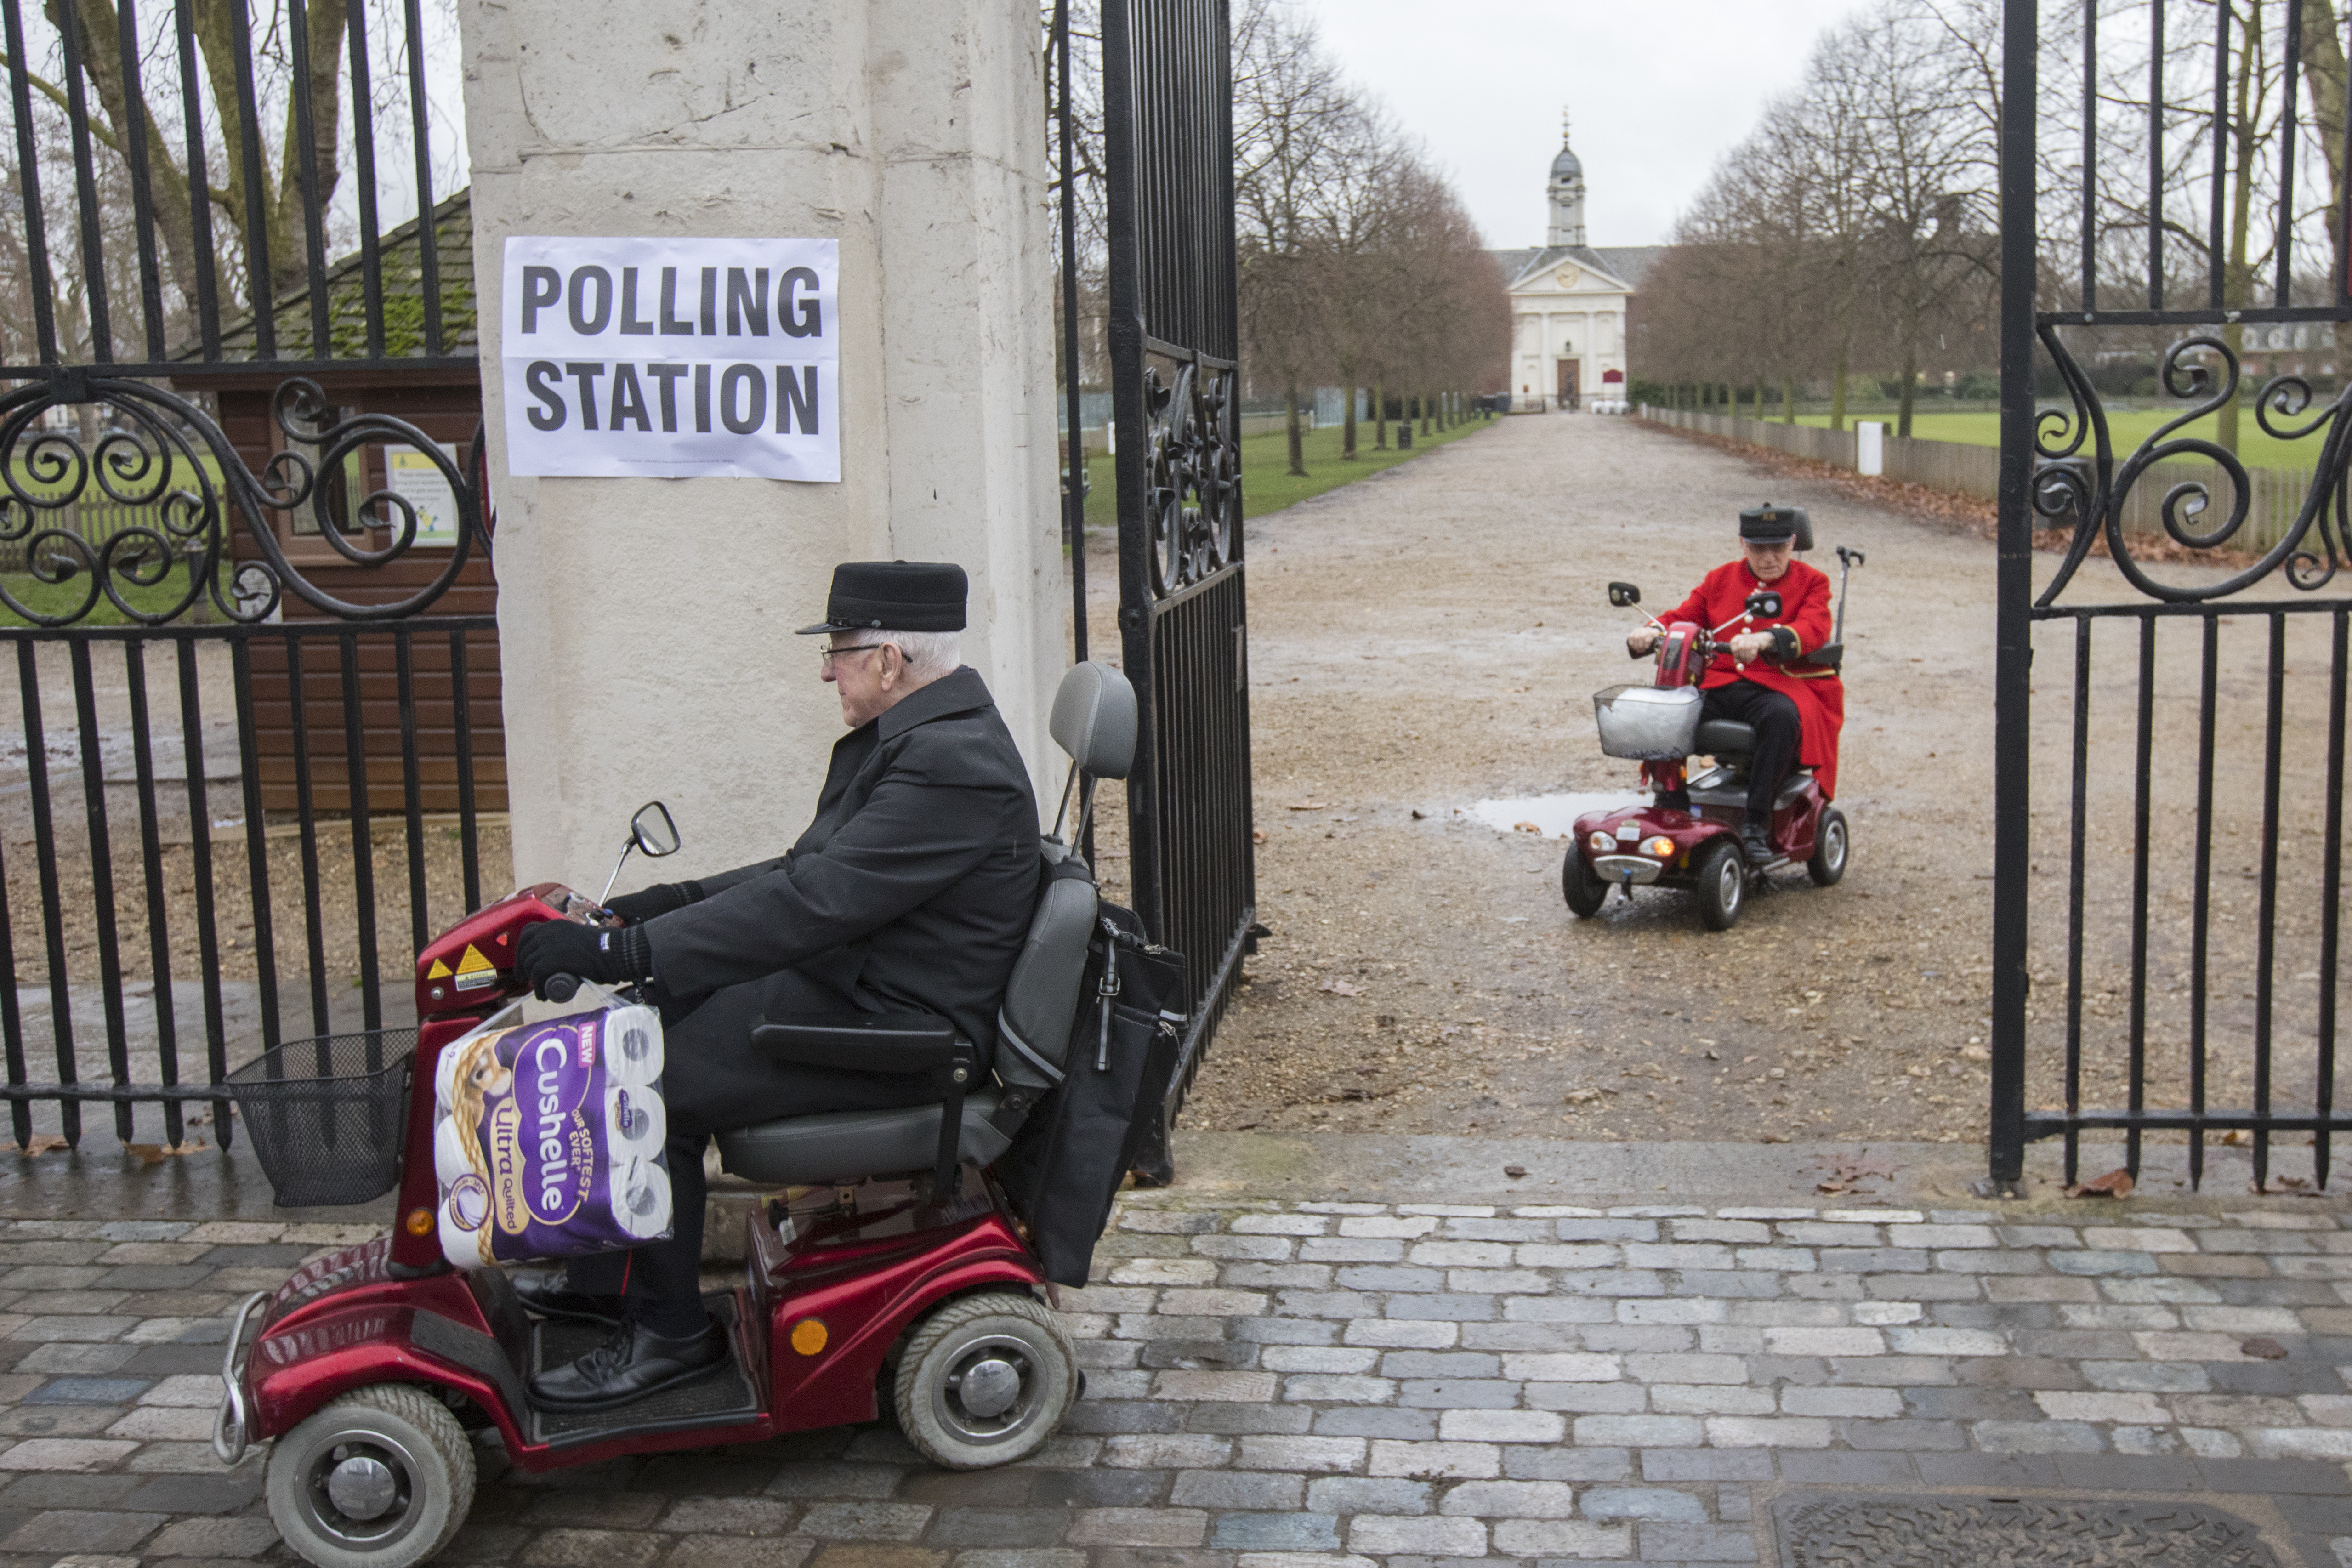 Chelsea Pensioners leave after casting their votes in the 2019 General Election in Chelsea, London. (Photo by Rick Findler/PA Images via Getty Images)